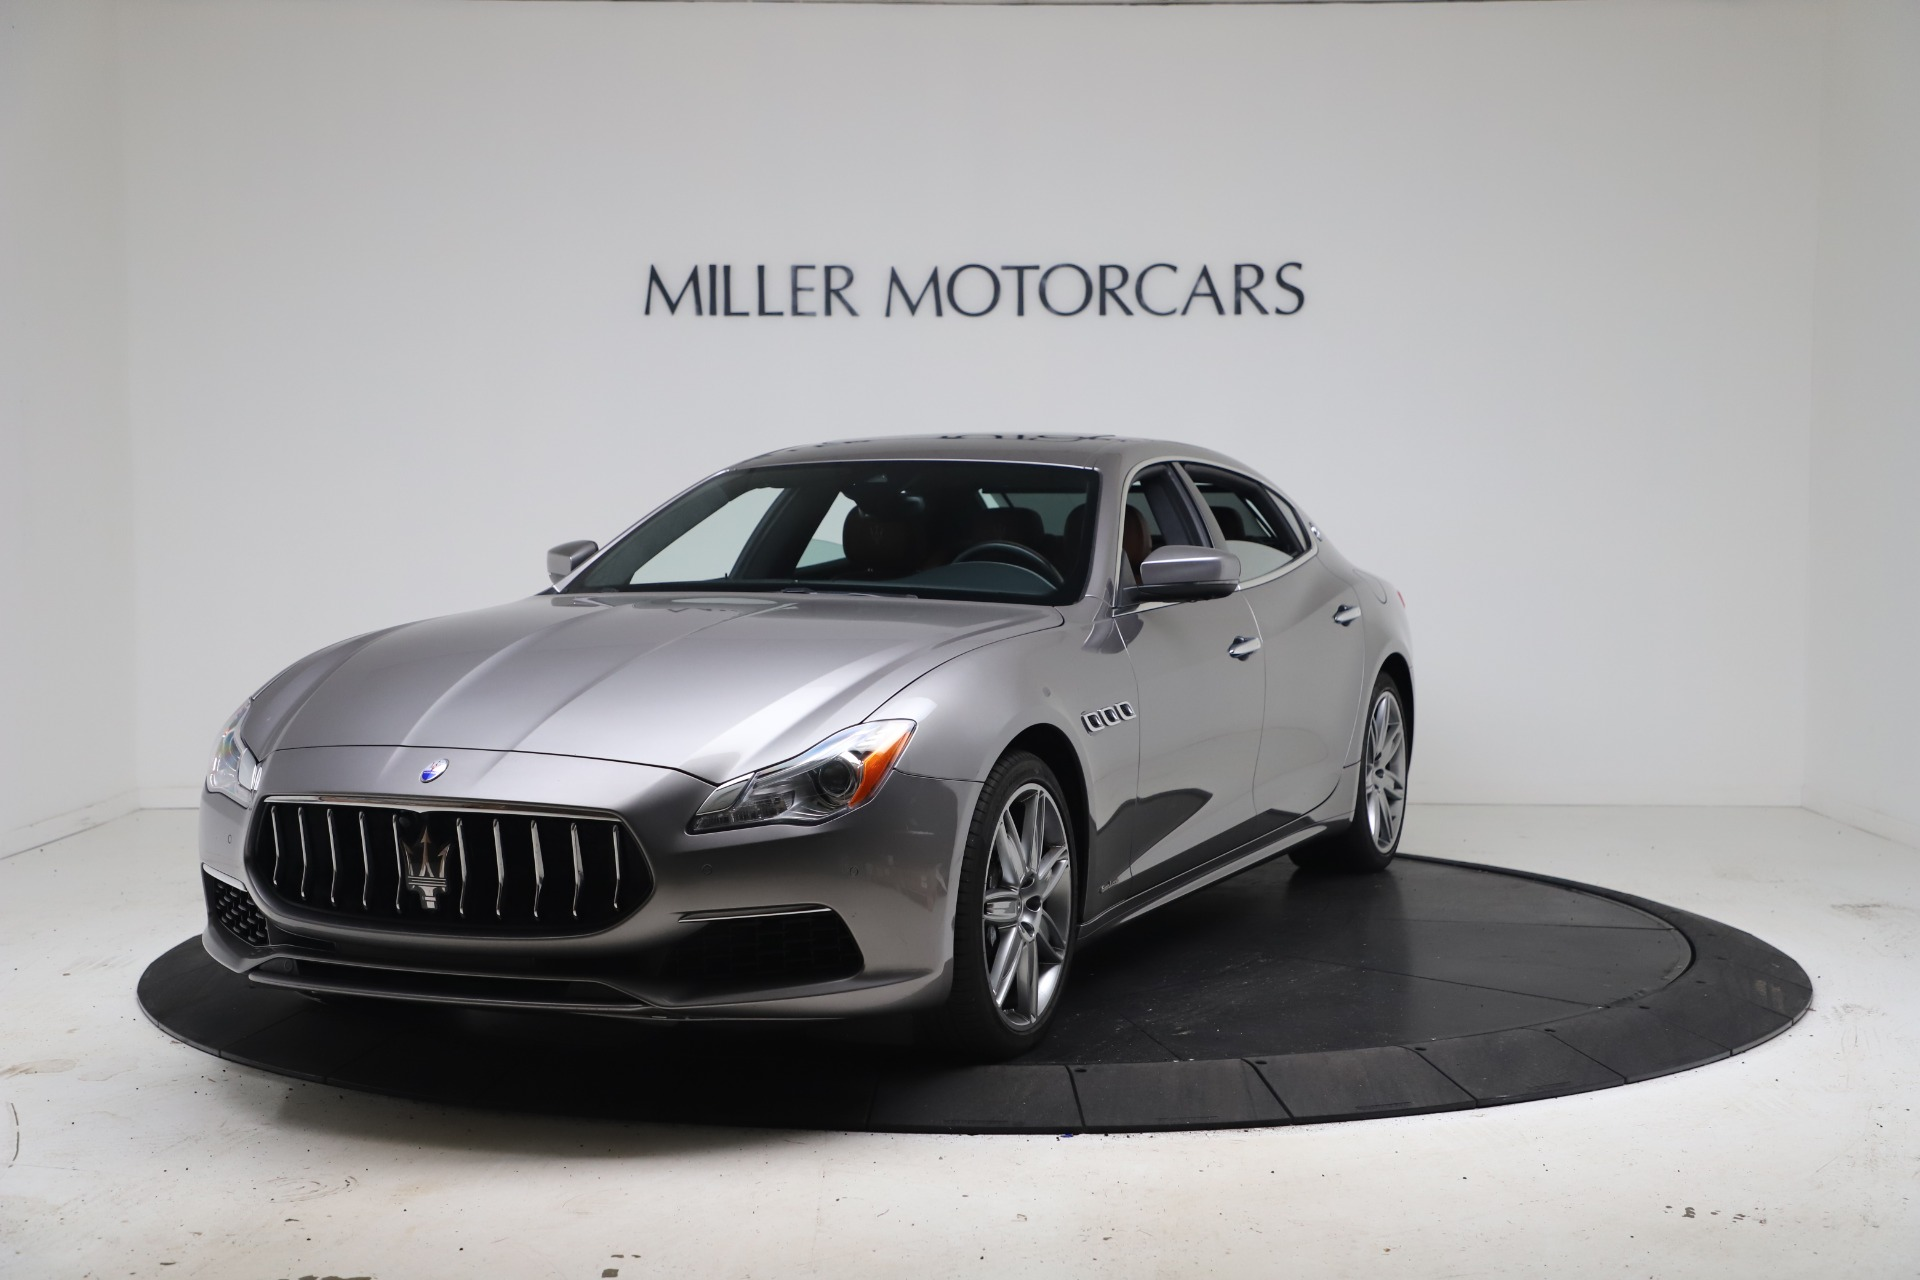 New 2017 Maserati Quattroporte SQ4 GranLusso/ Zegna For Sale In Westport, CT 1355_main